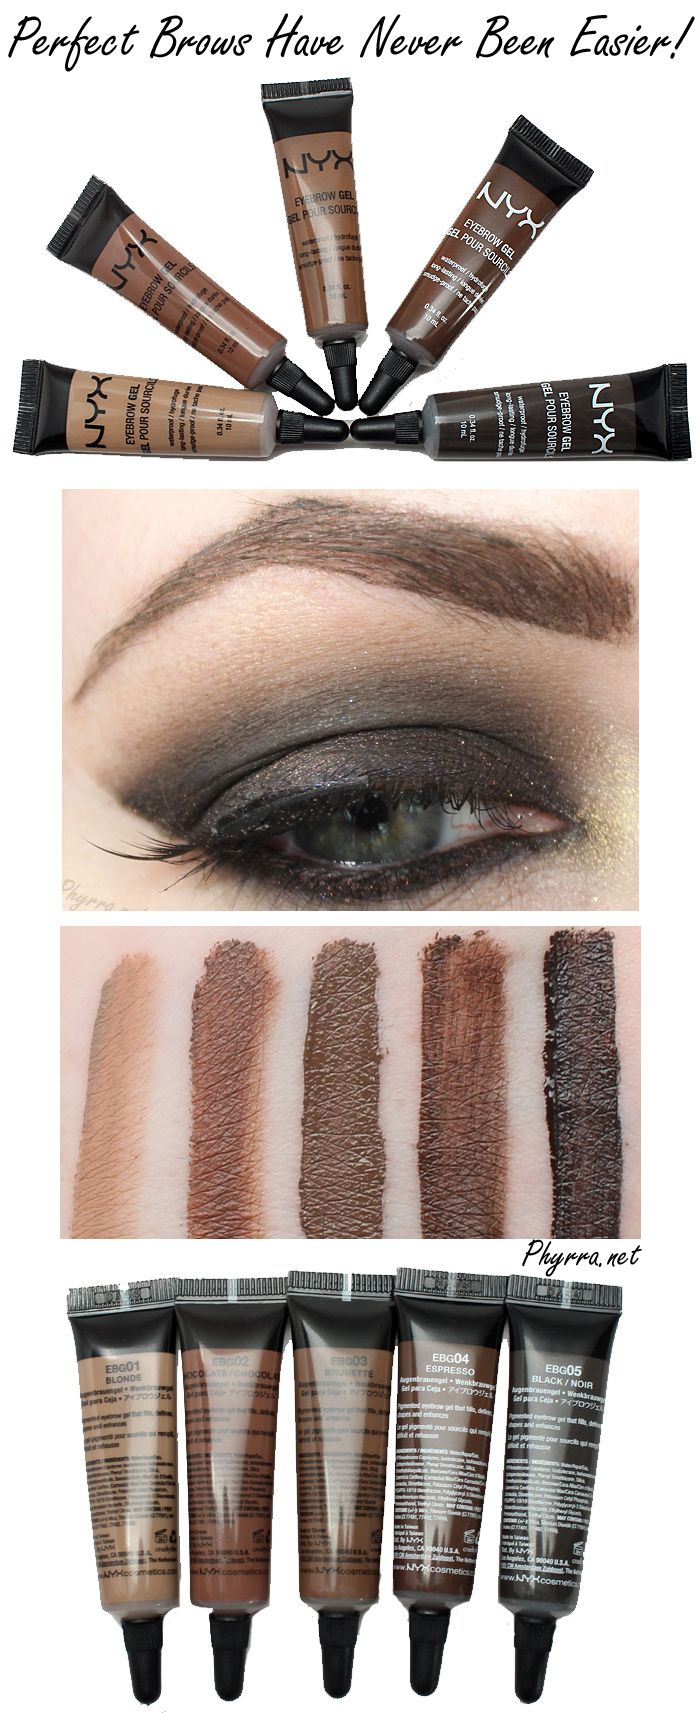 Nyx Eyebrow Gel Review and Swatches Nyx eyebrow gel